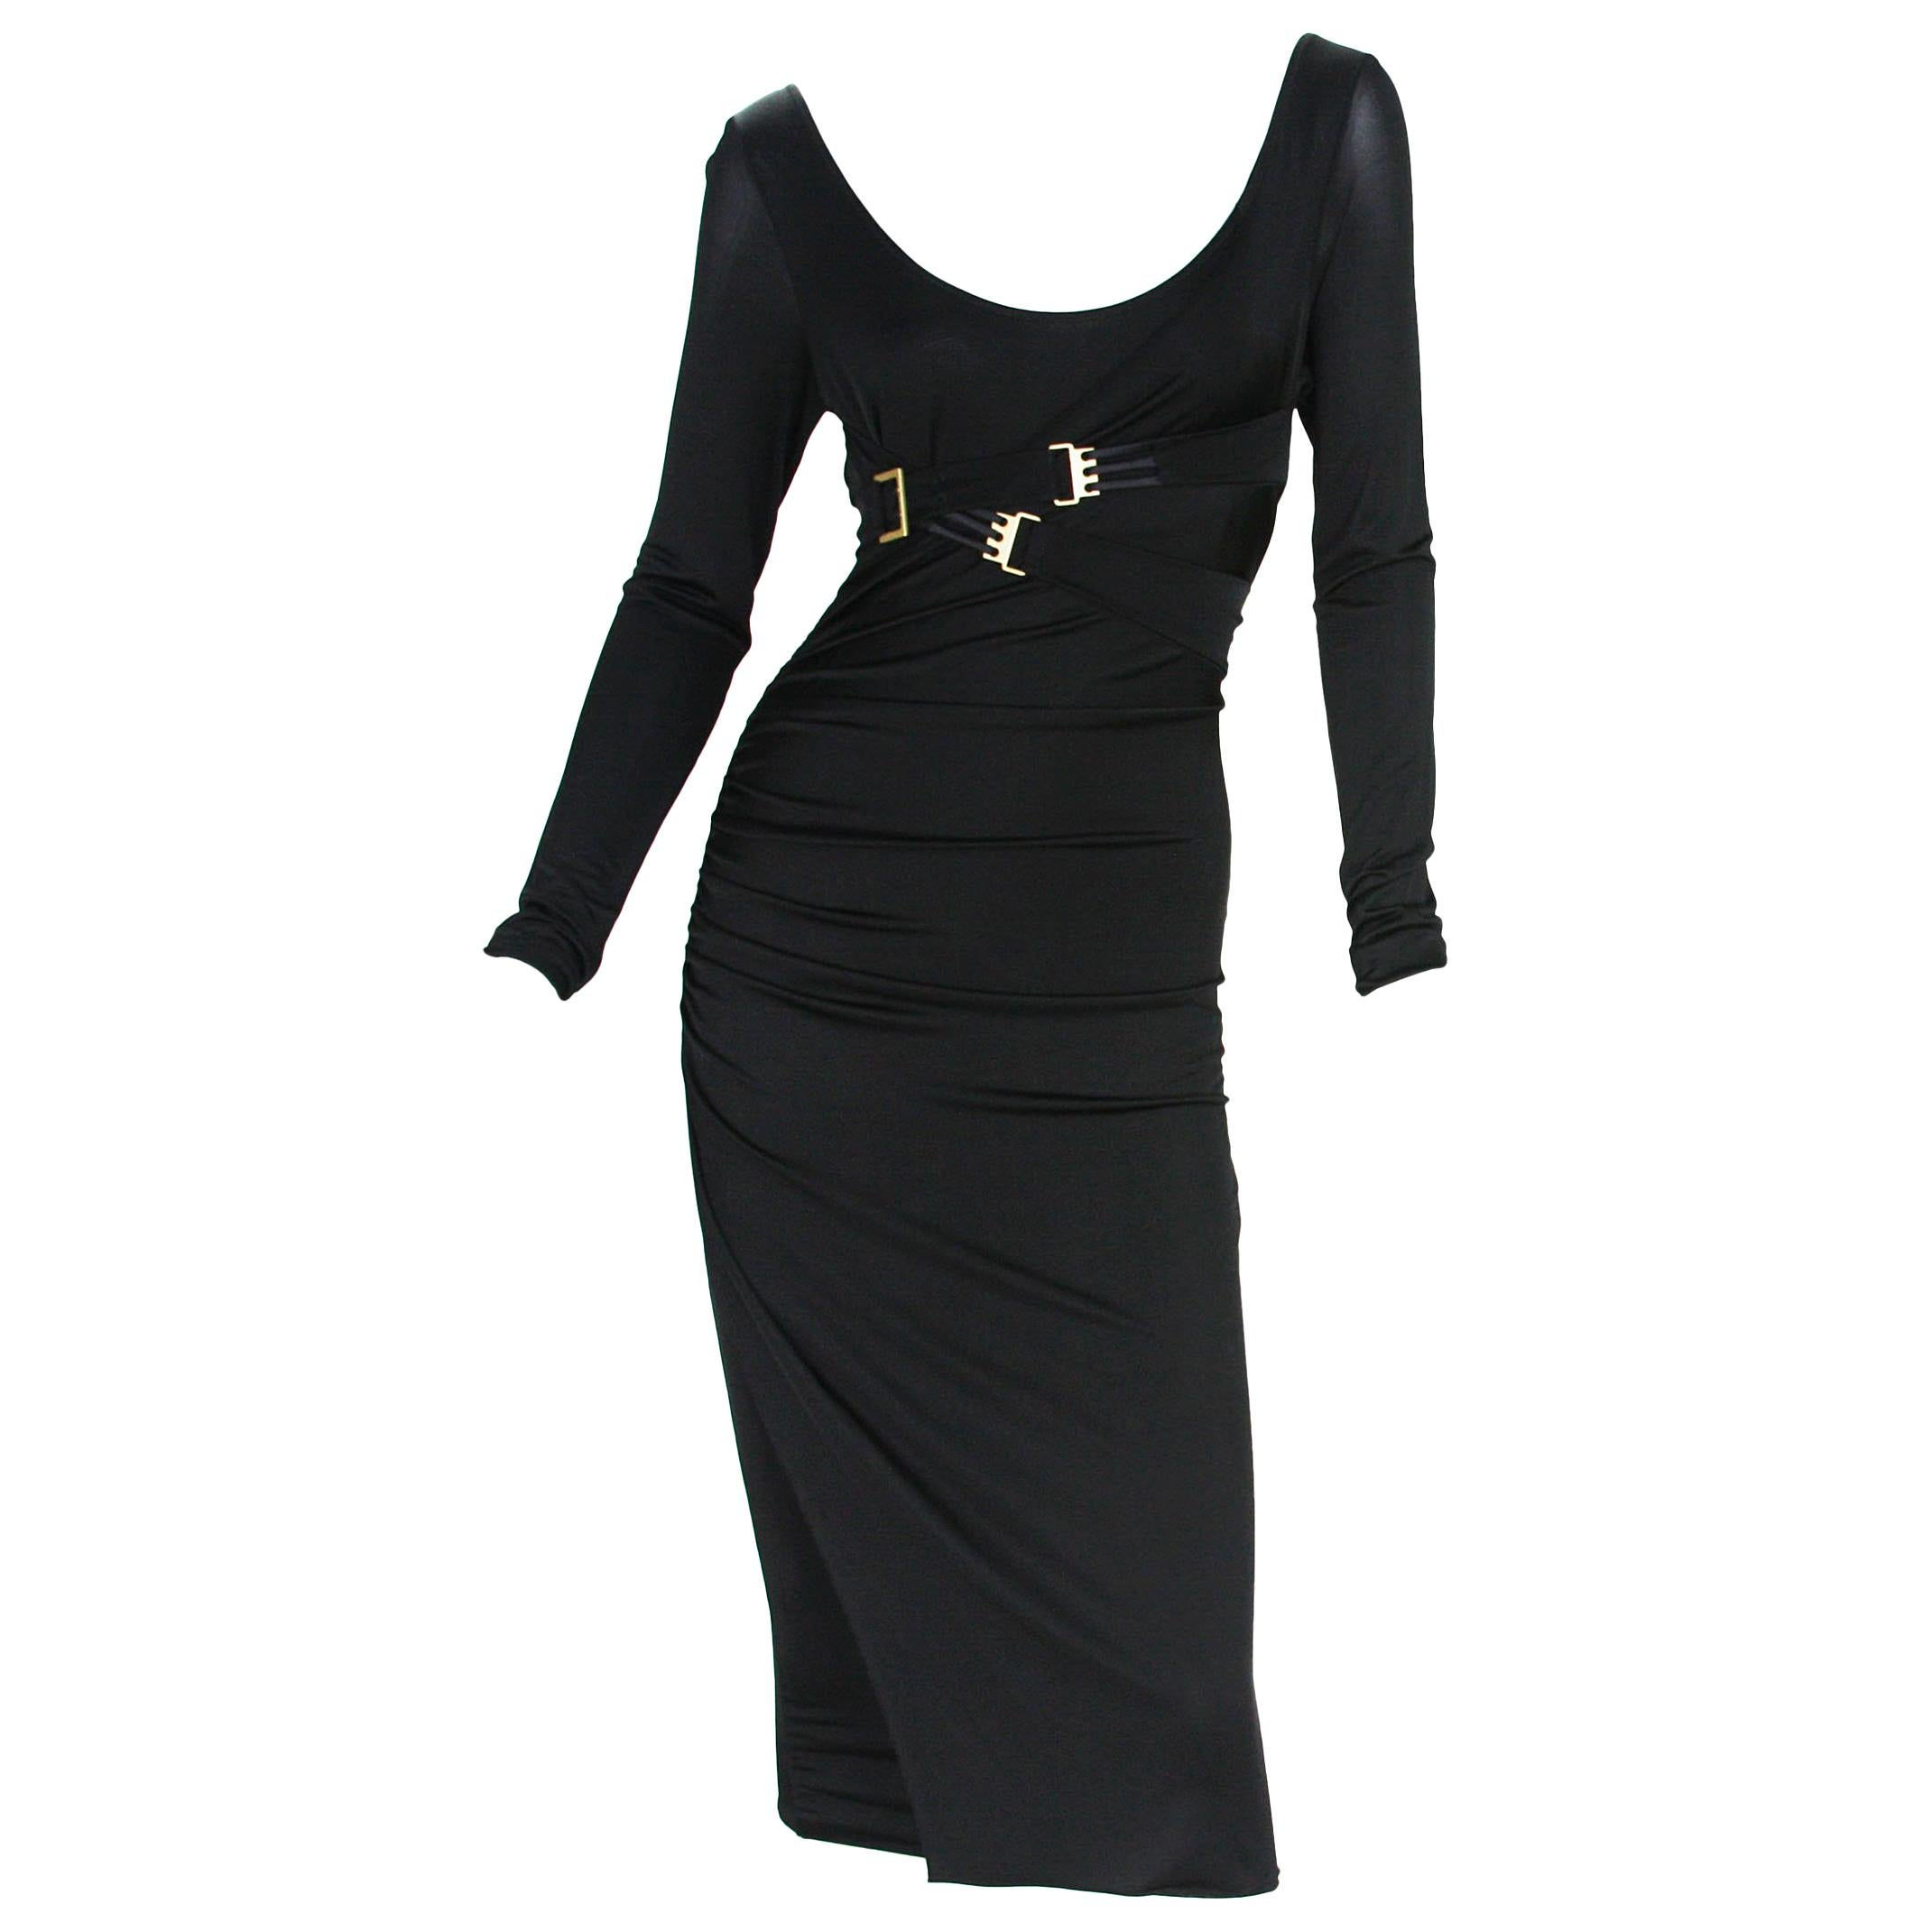 98d970122 2 IN 1 Rare Tom Ford for Gucci 2003 Collection Jersey Bondage Buckle Dress  M S For Sale at 1stdibs